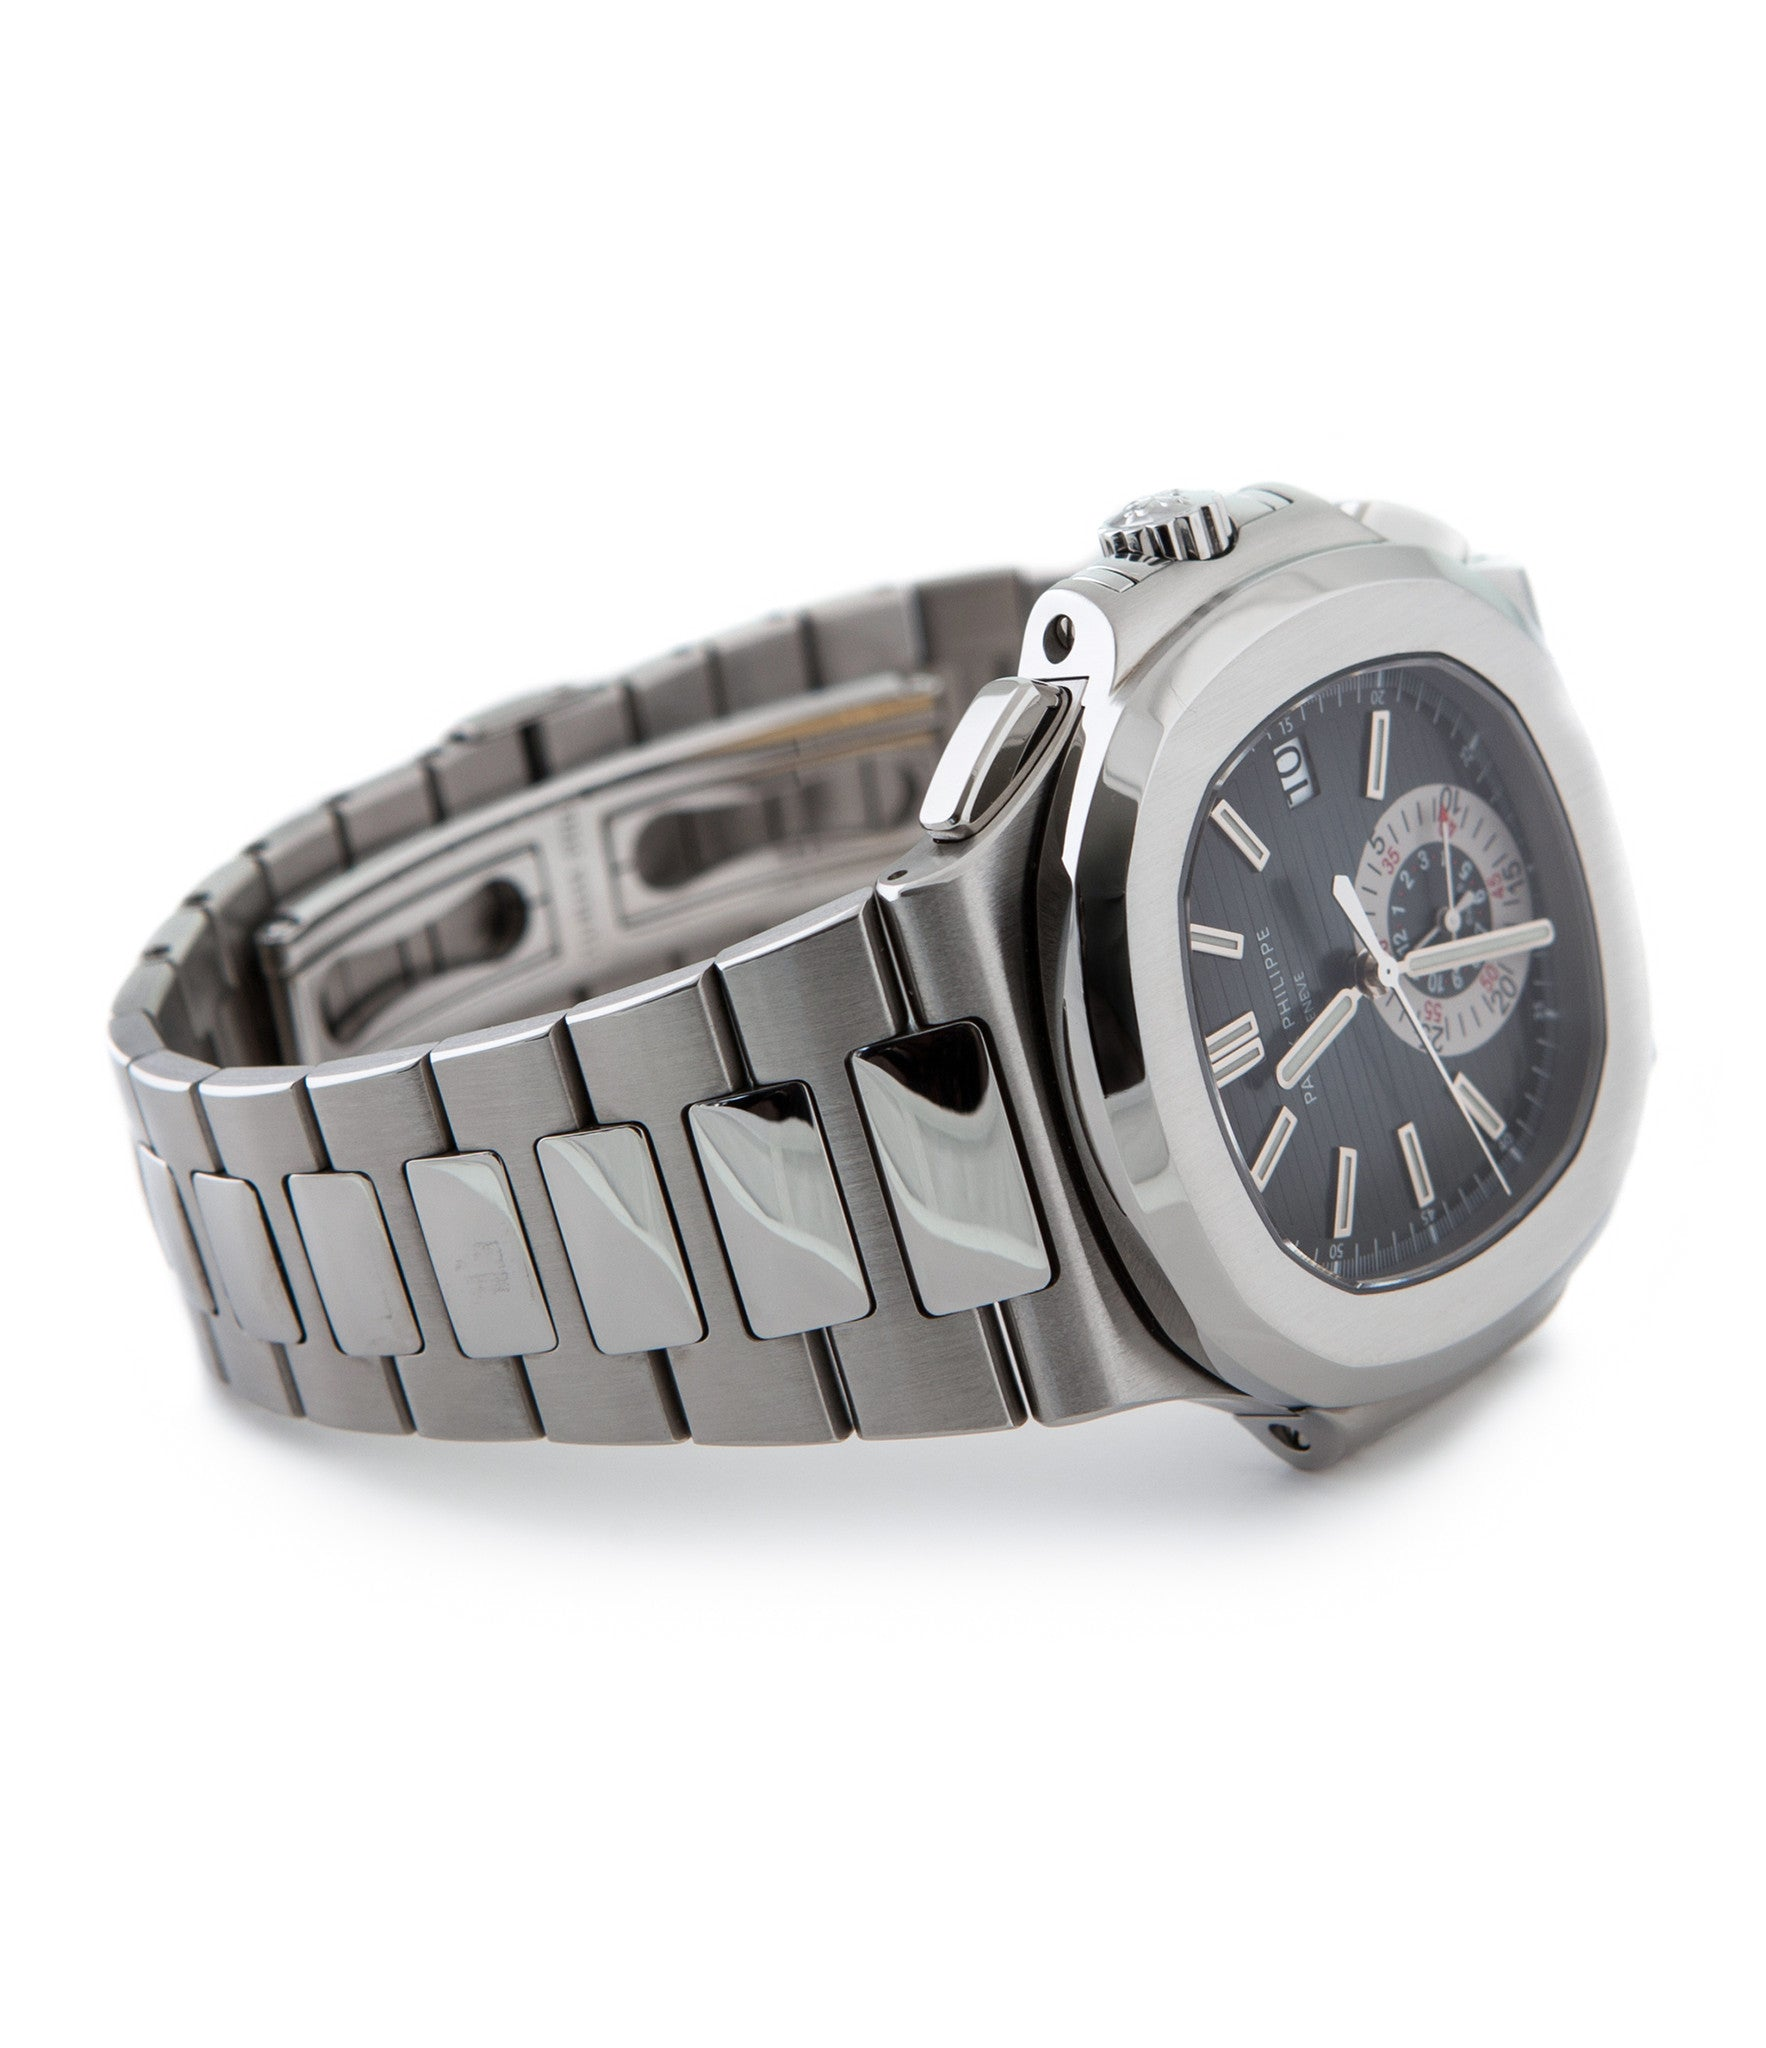 buy Patek Philippe Chronograph Nautilus 5980A discontinued rare steel watch online pre-owned luxury authentic watch from WATCH XCHANGE London for sale